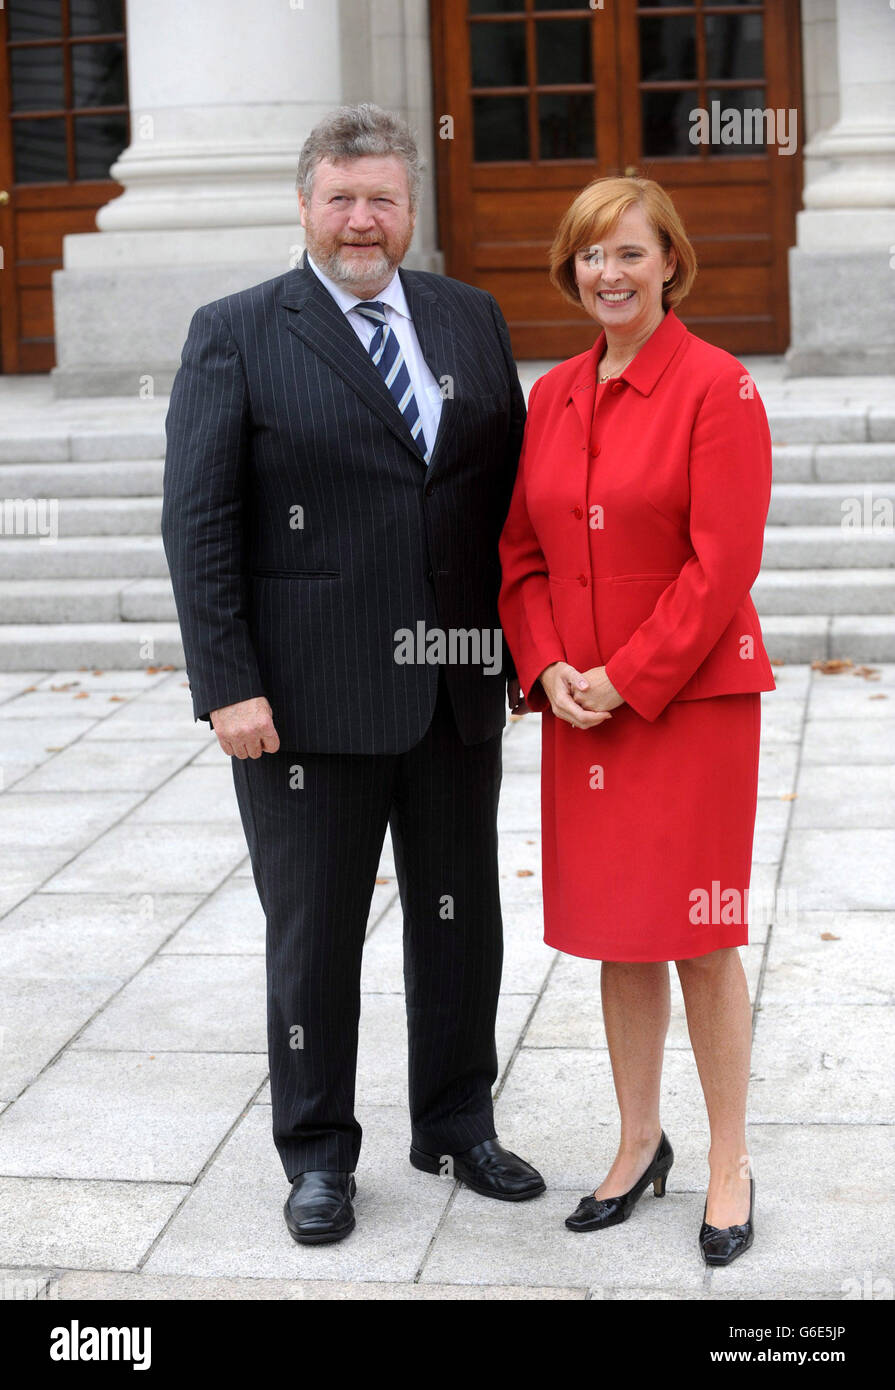 HEALTH Childrens - 13 Sept 2013 Minister for Health, Dr. James Reilly TD. with Ms Eilish Hardiman. Photocall to Stock Photo